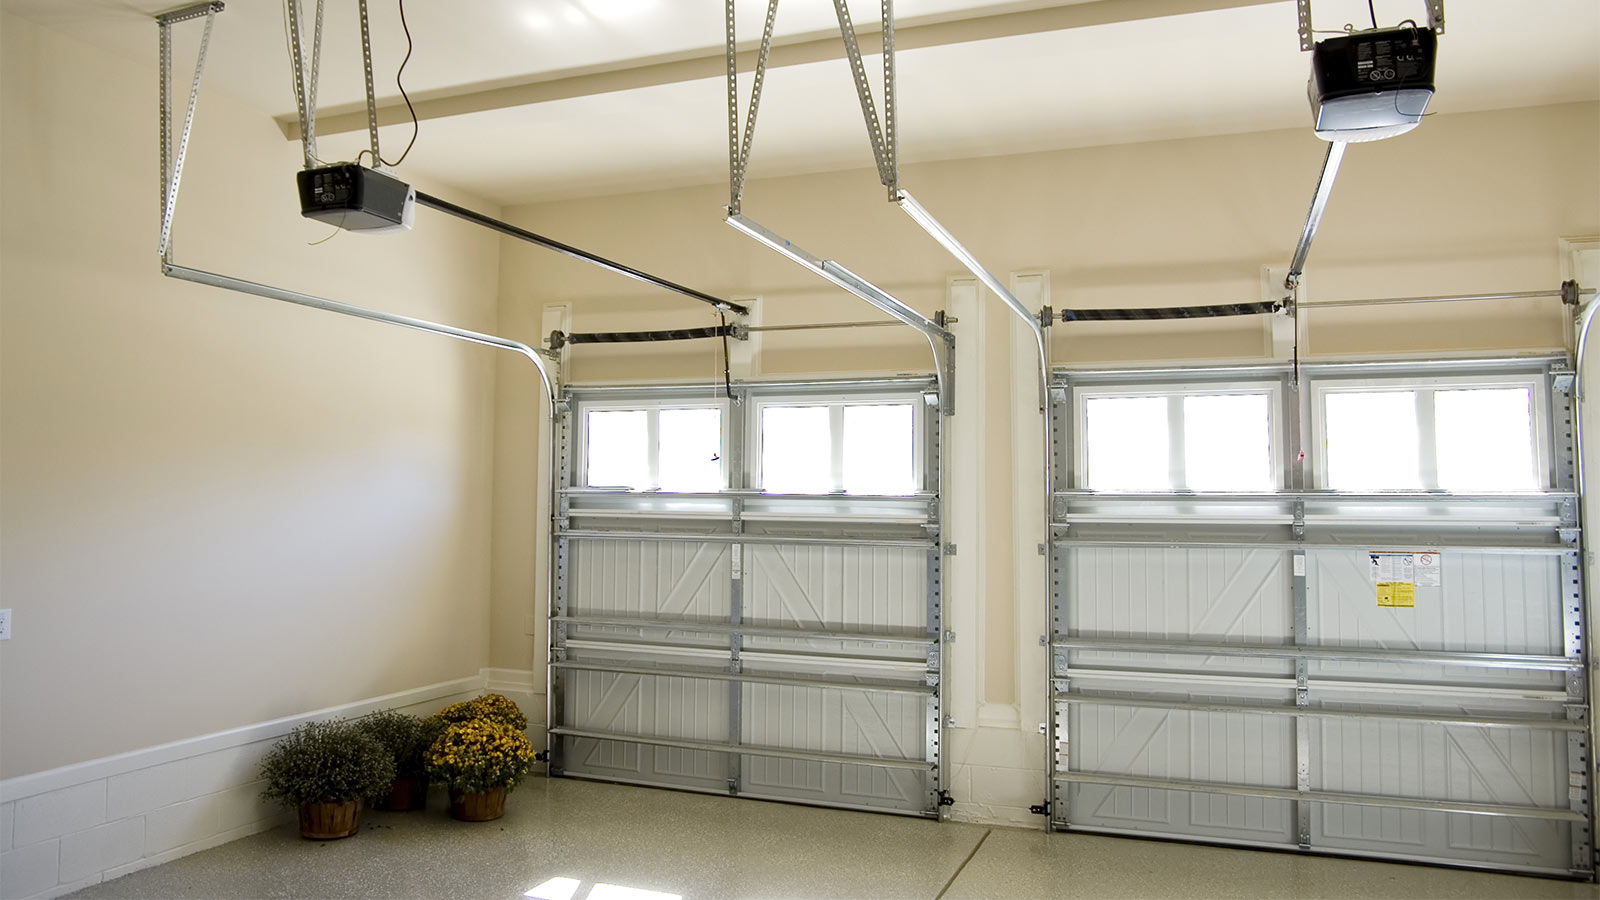 Sectional Garage Doors from Electric Roller Garage Doors Croydon suppliers.